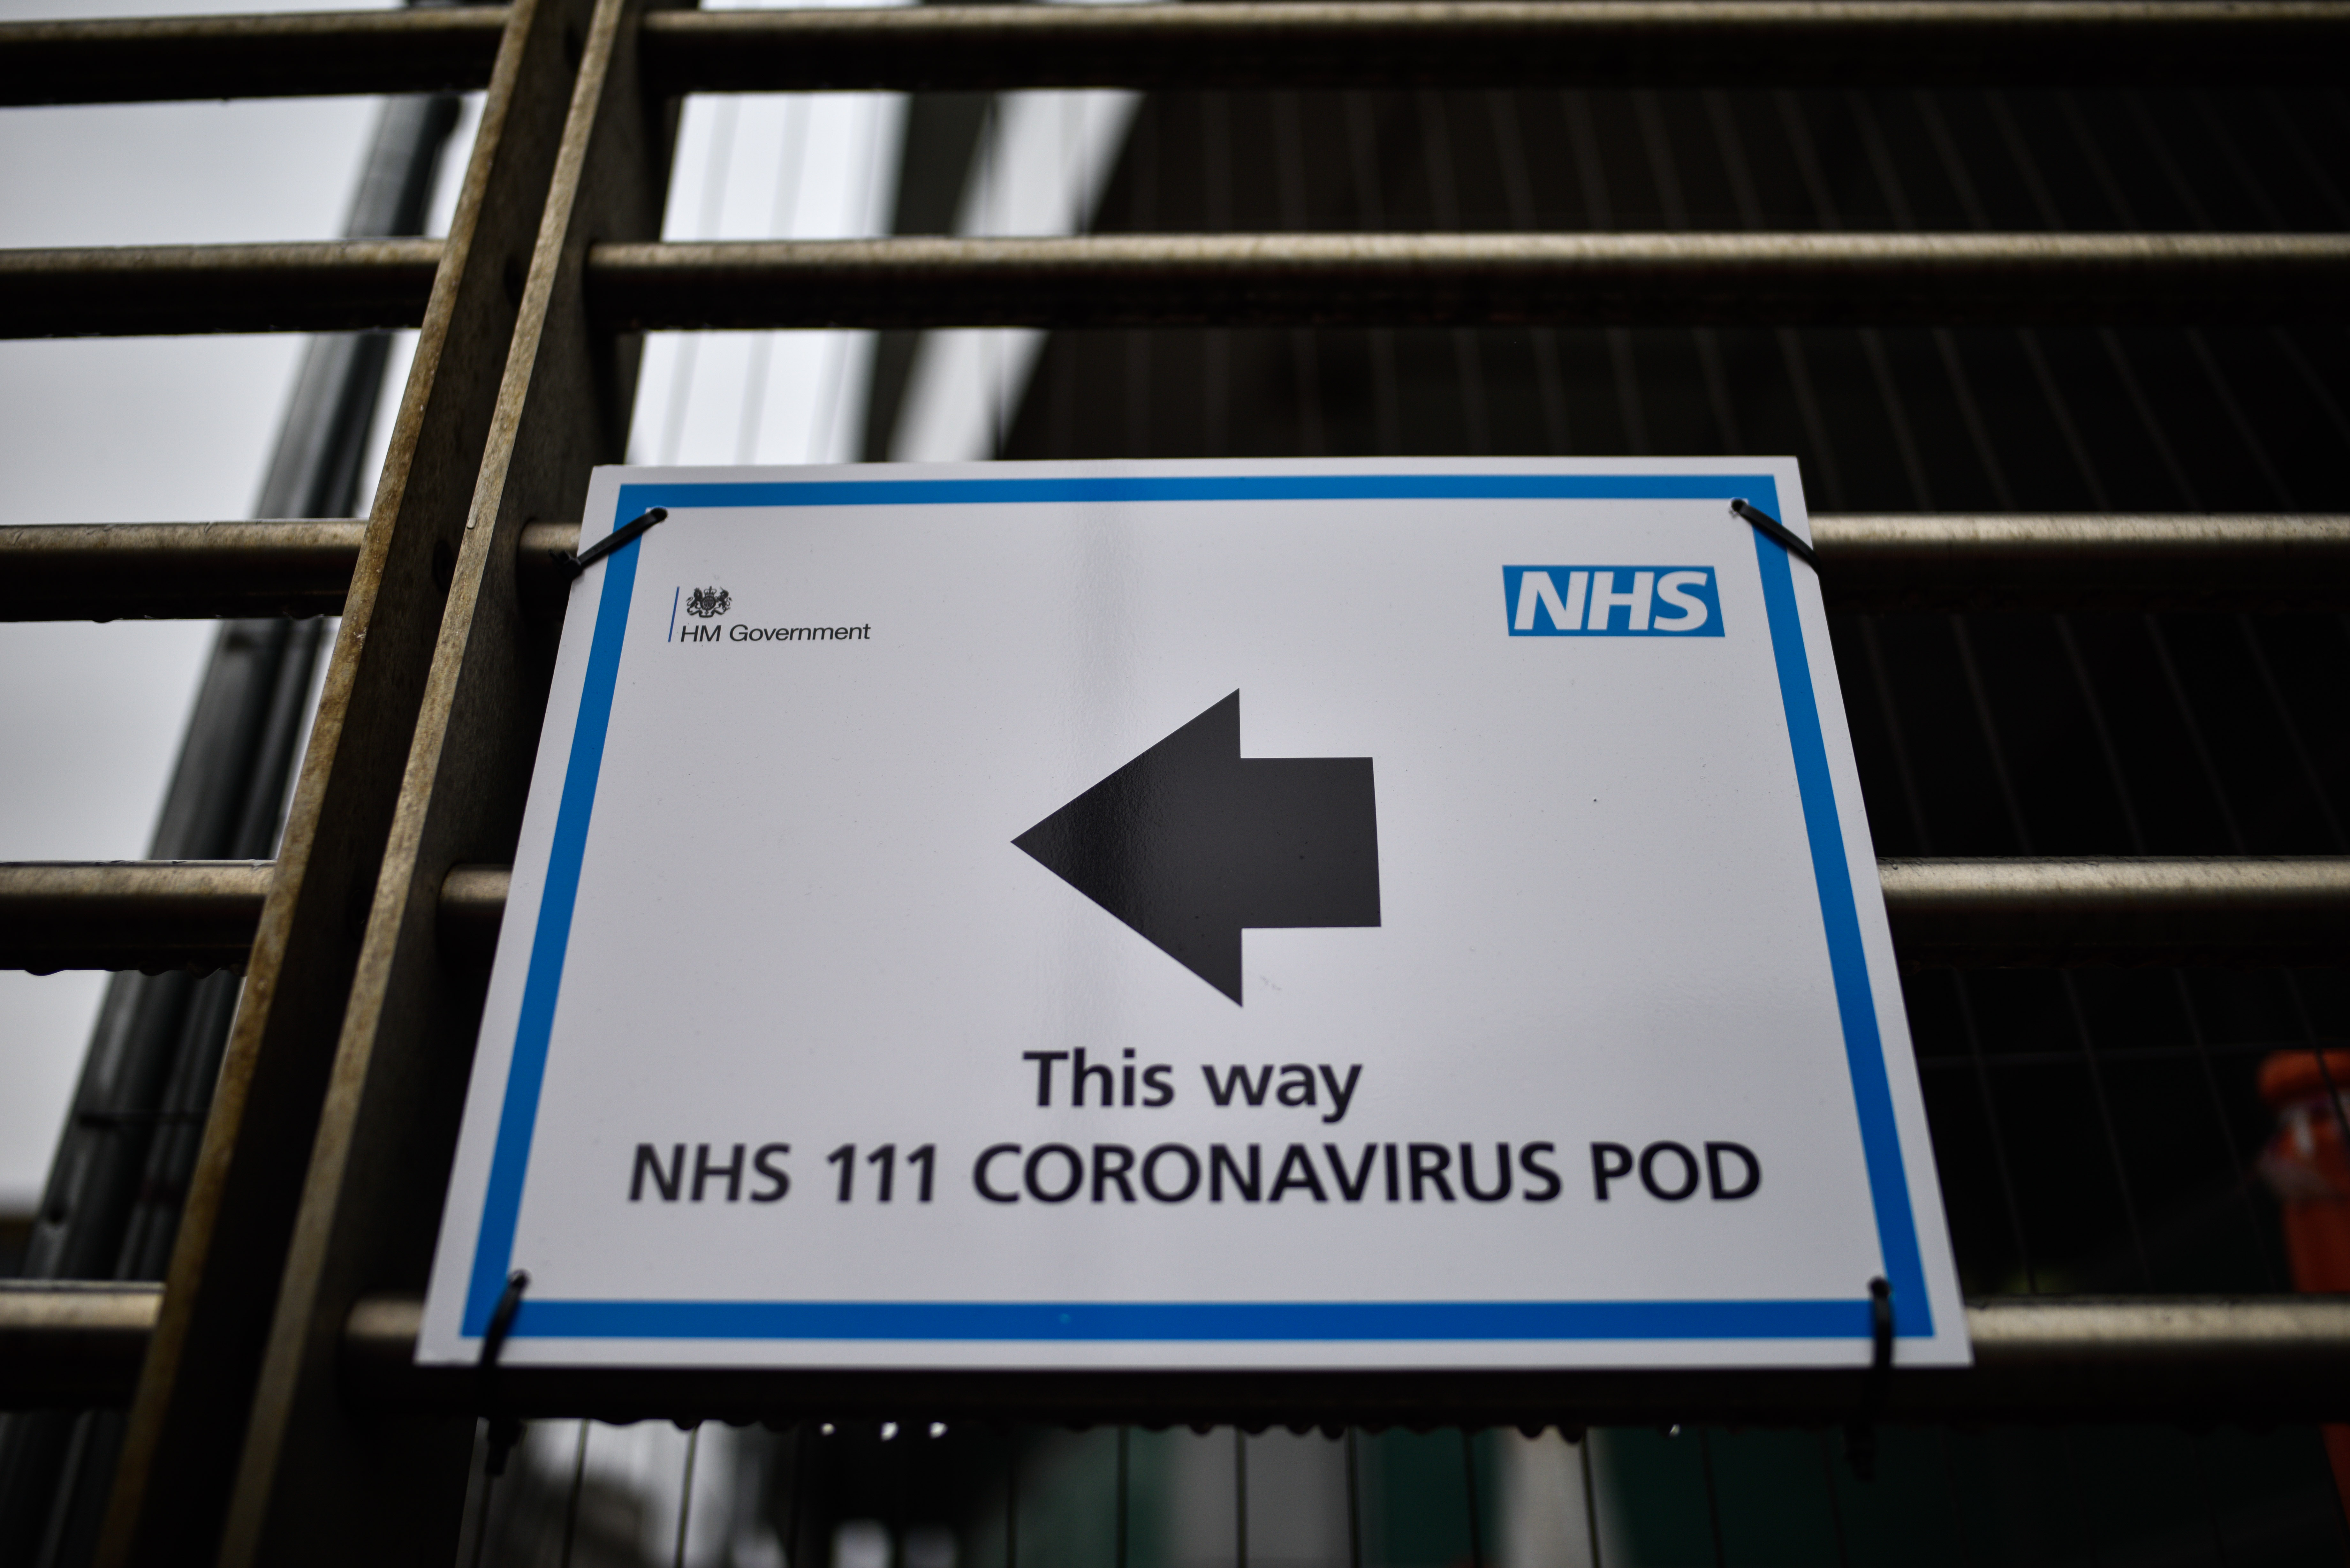 A sign directing patients towards a Coronavirus pod at University College Hospital on March 4, 2020 in London, United Kingdom.